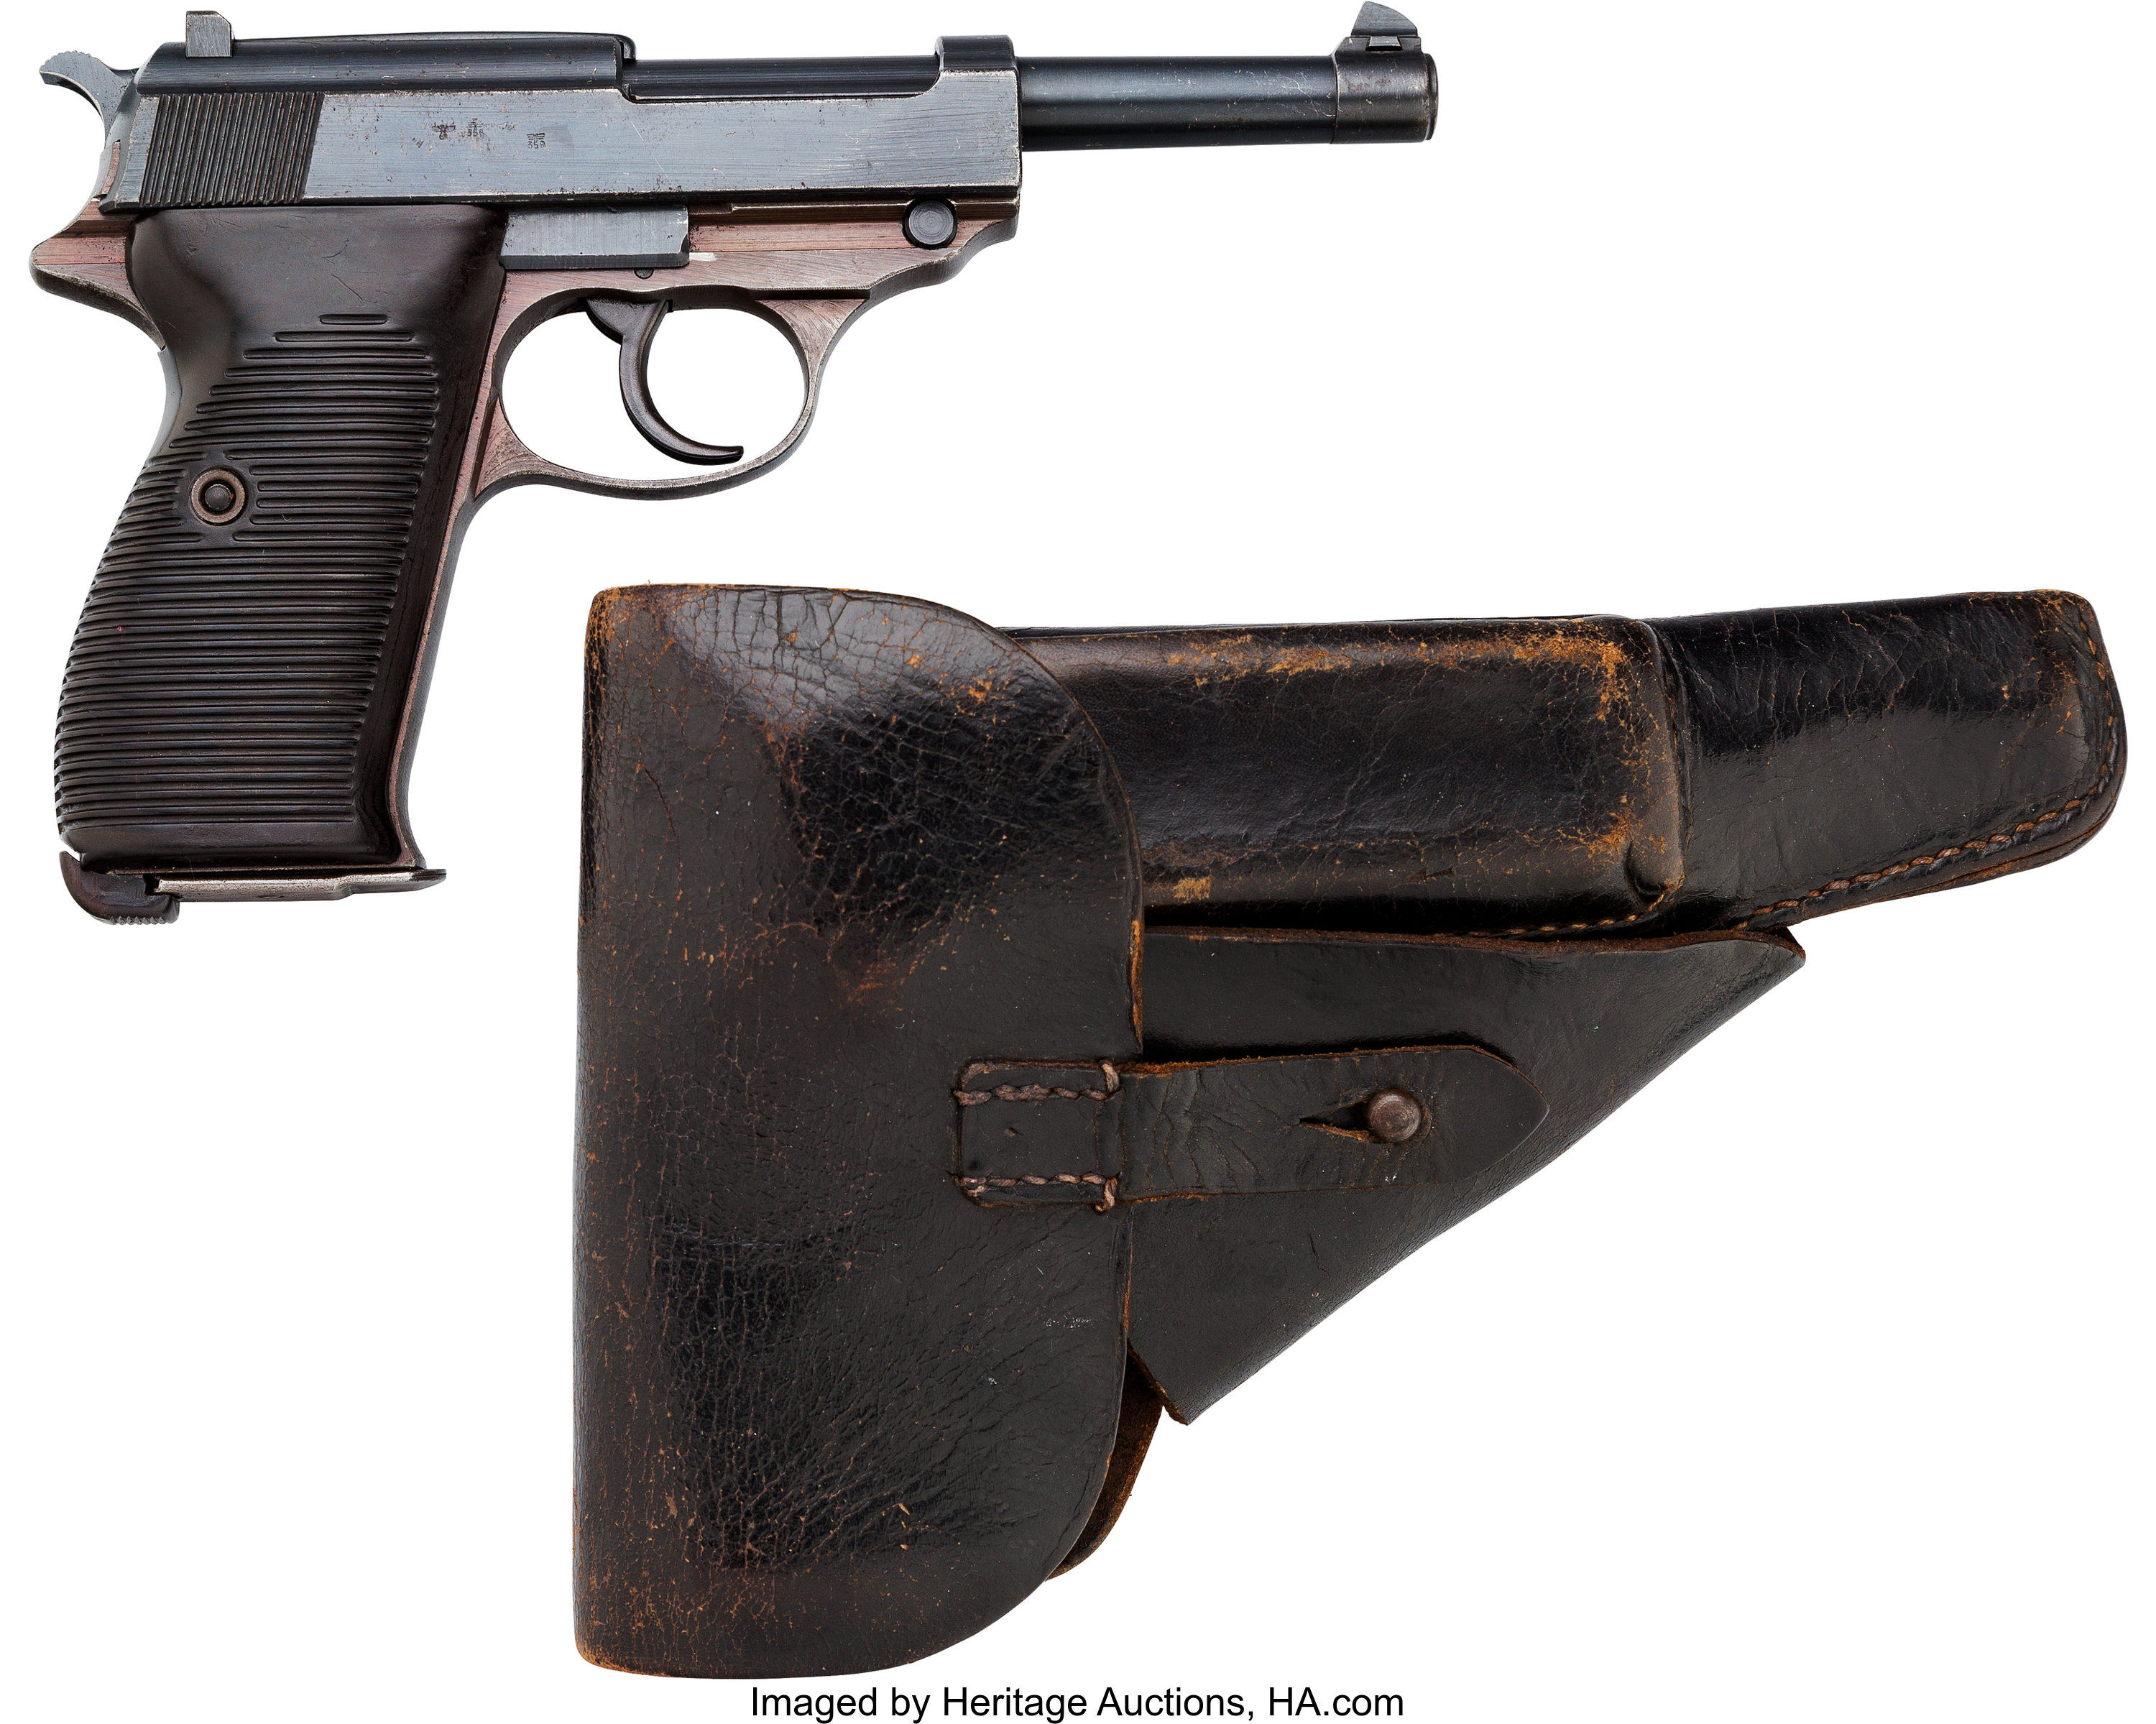 Walther Model P 38 Semi-Automatic Pistol with Holster